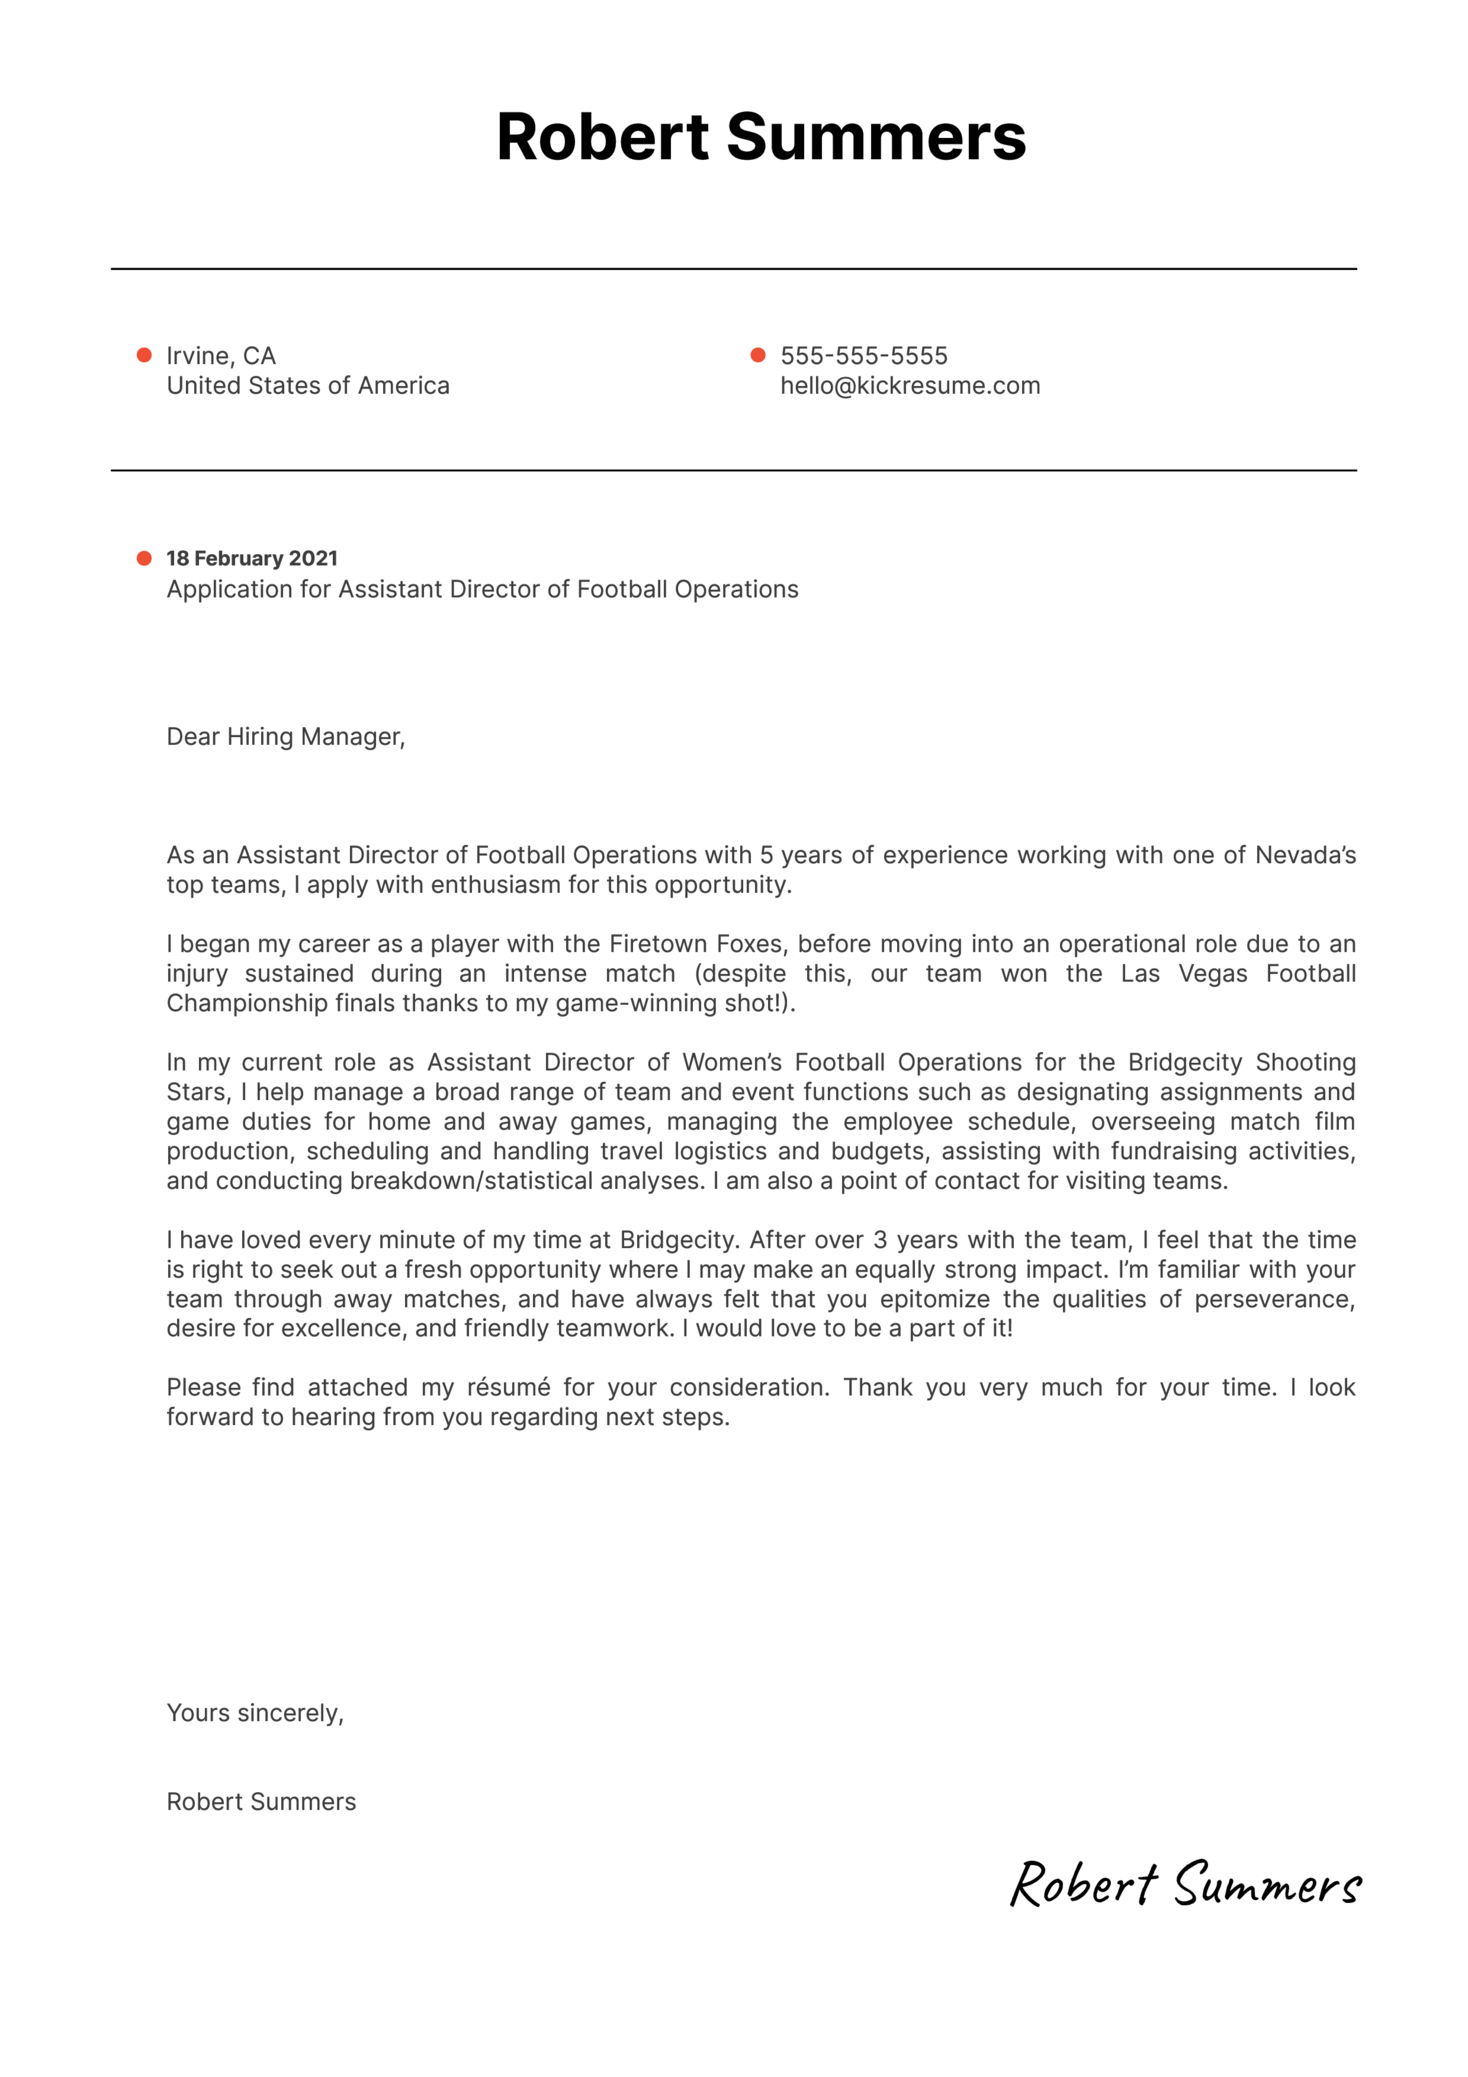 Assistant Director of Football Operations Cover Letter Template